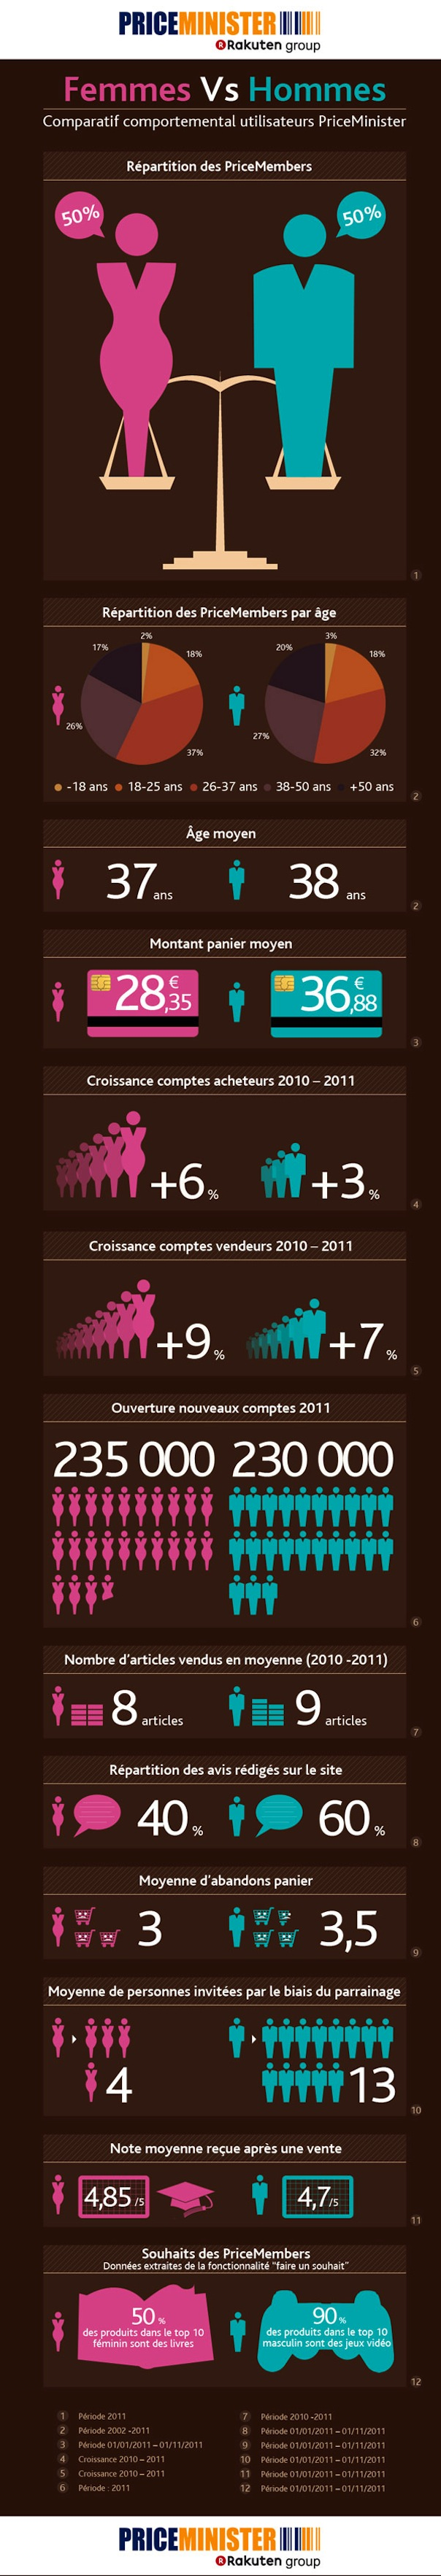 Priceministere : Comportement Homme Vs Femme